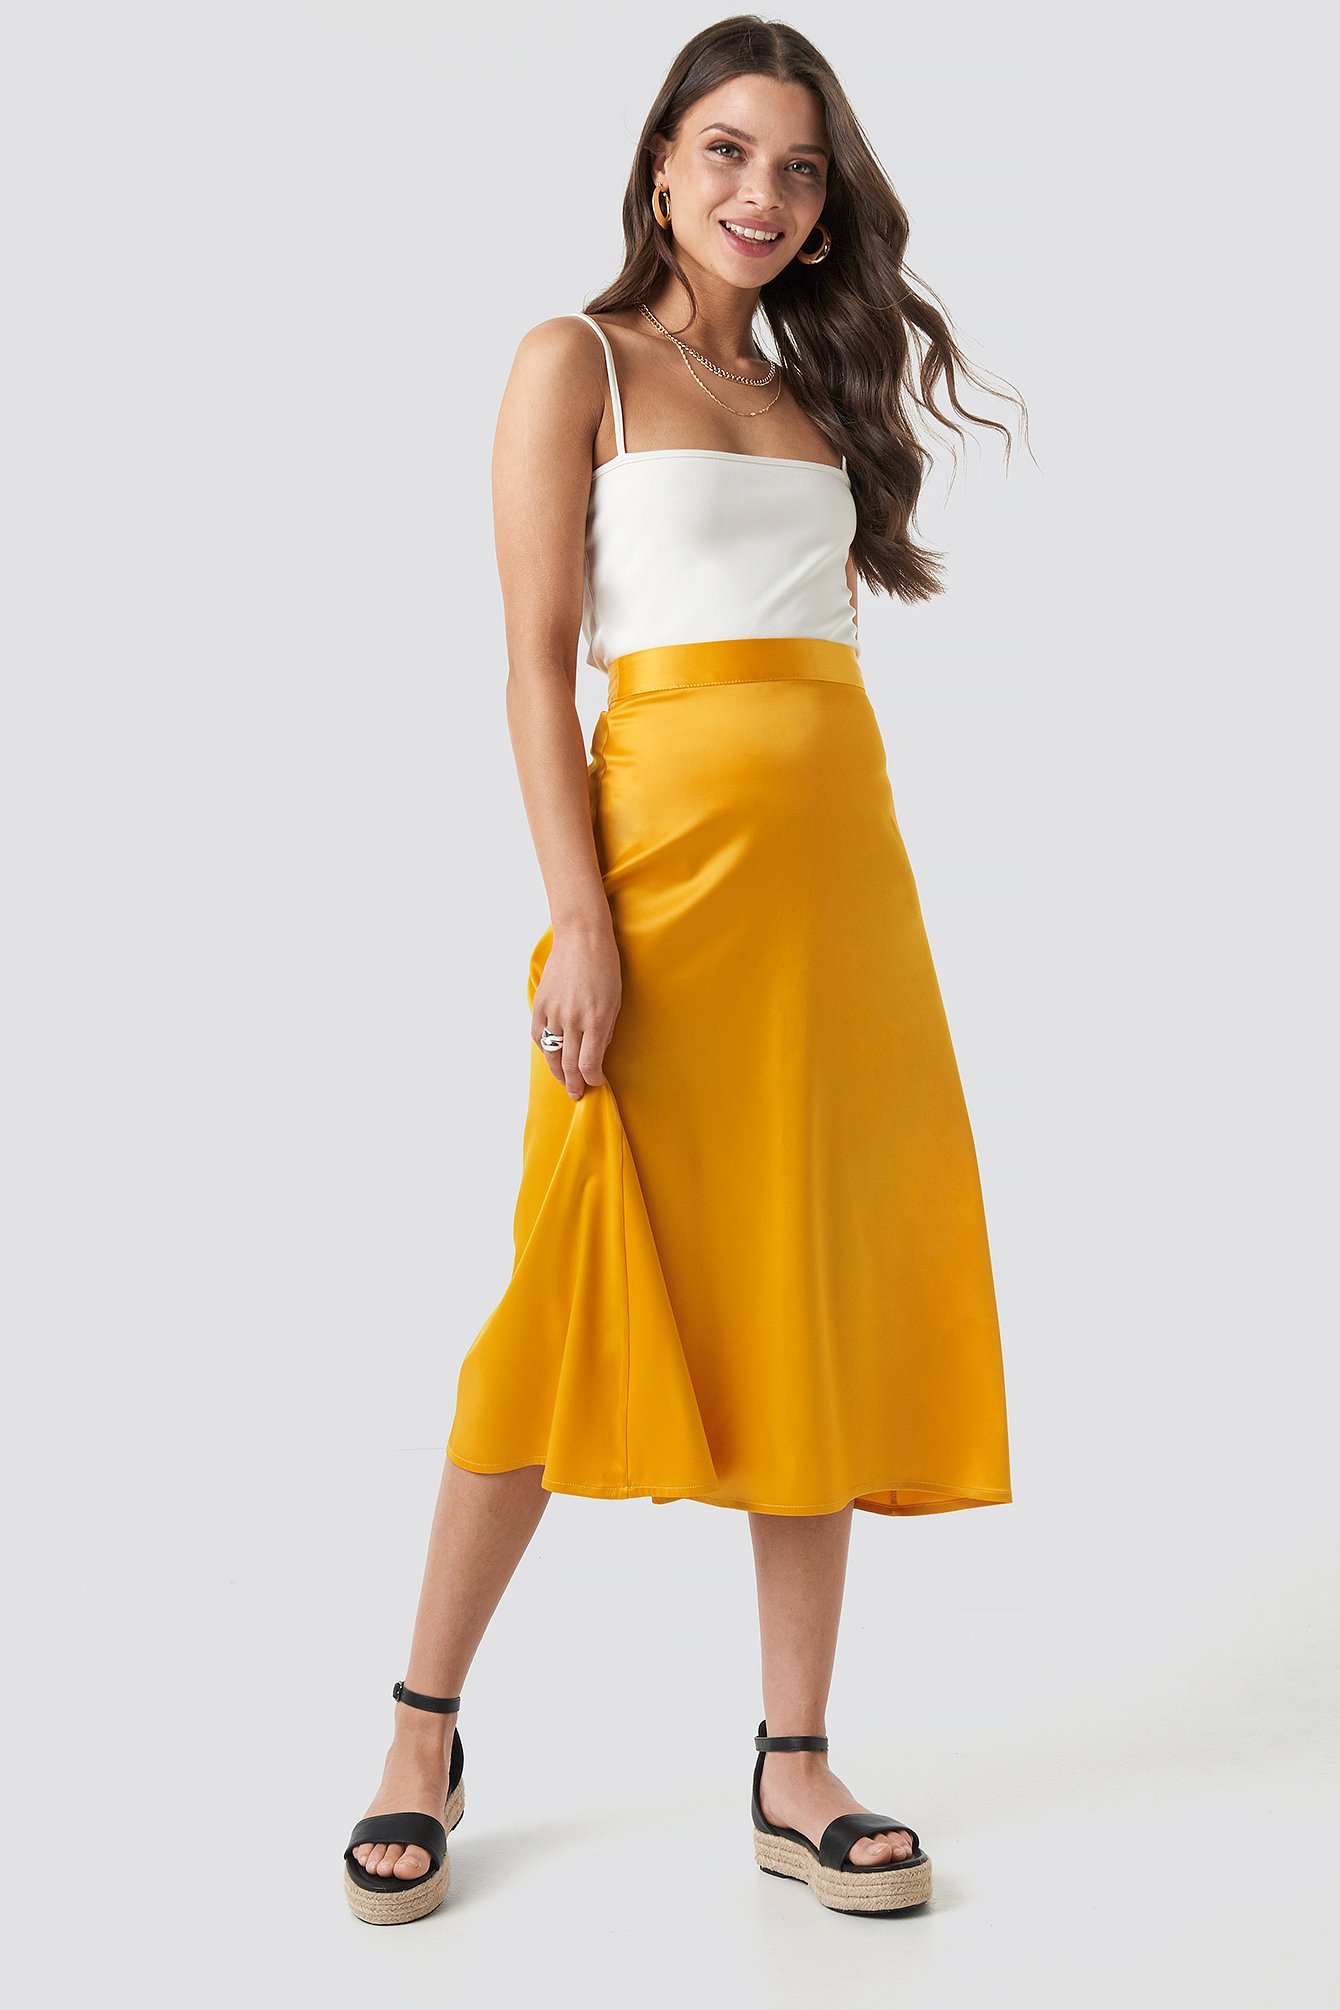 483c387ba5 Bias Cut Satin Midi Skirt